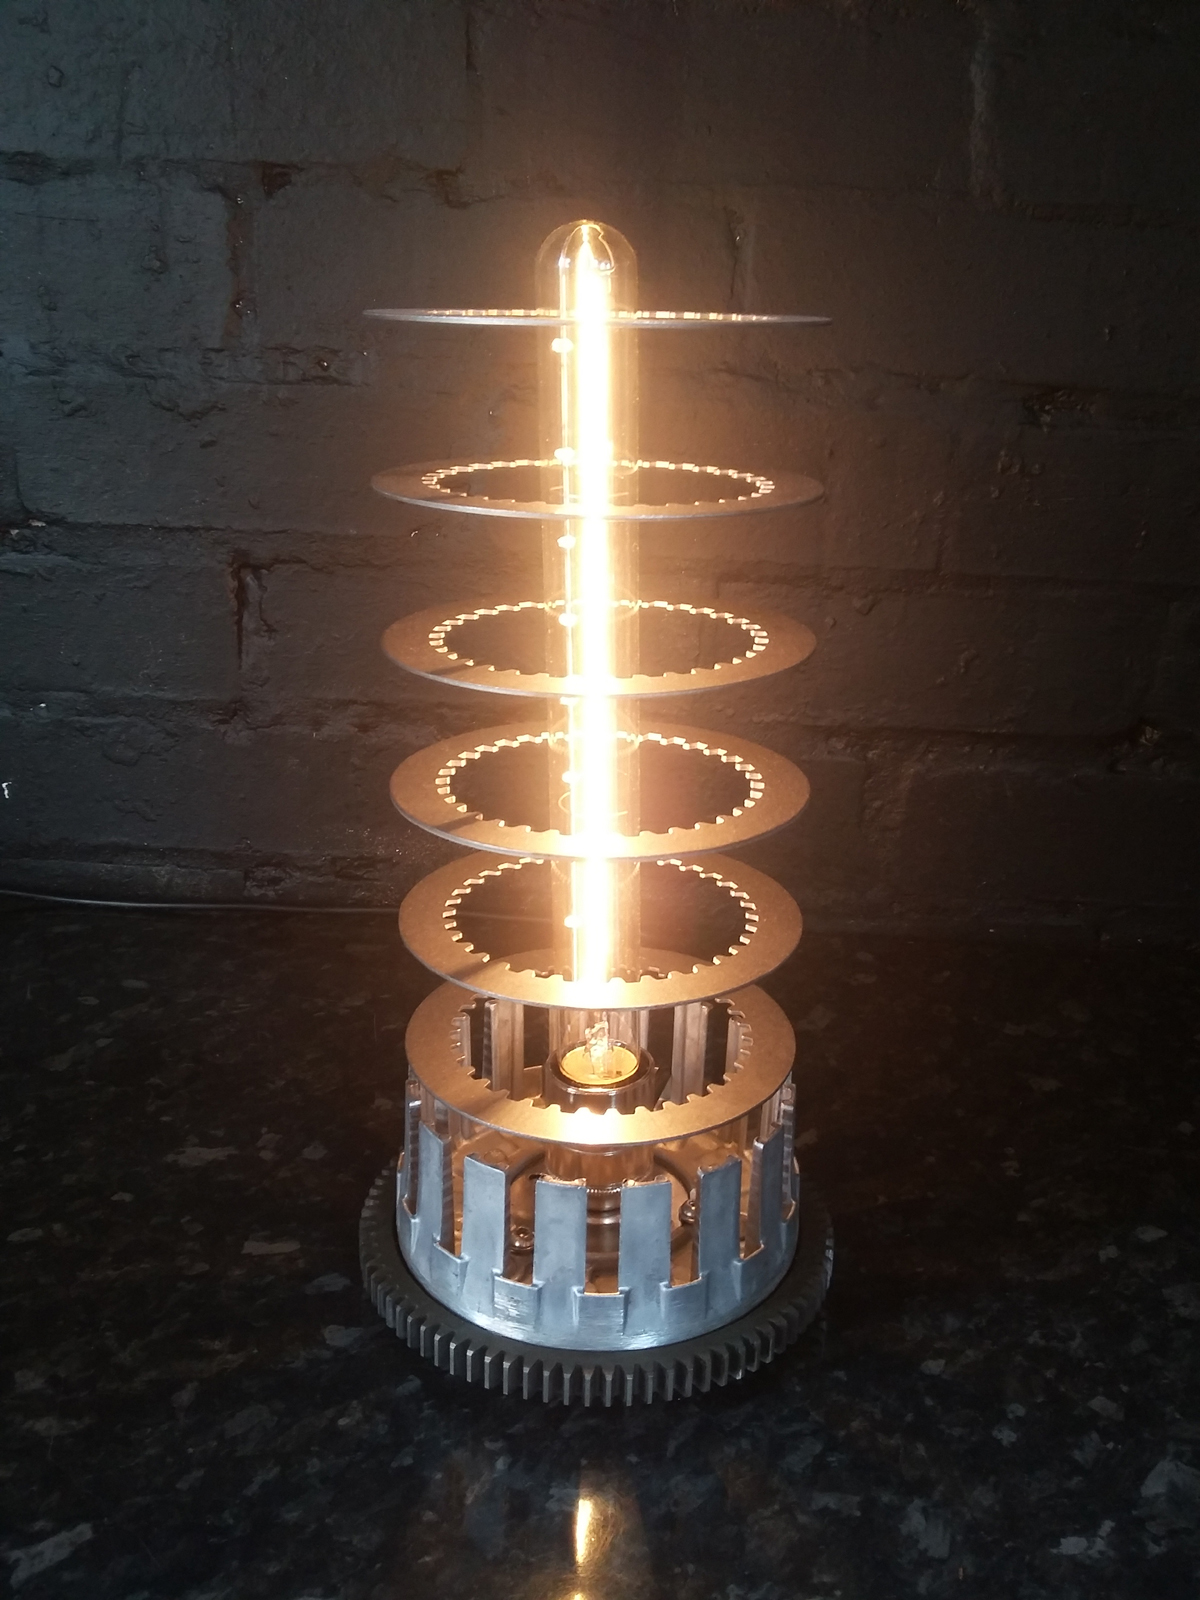 MOTORCYCLE CLUTCH EDISON FILAMENT LAMP